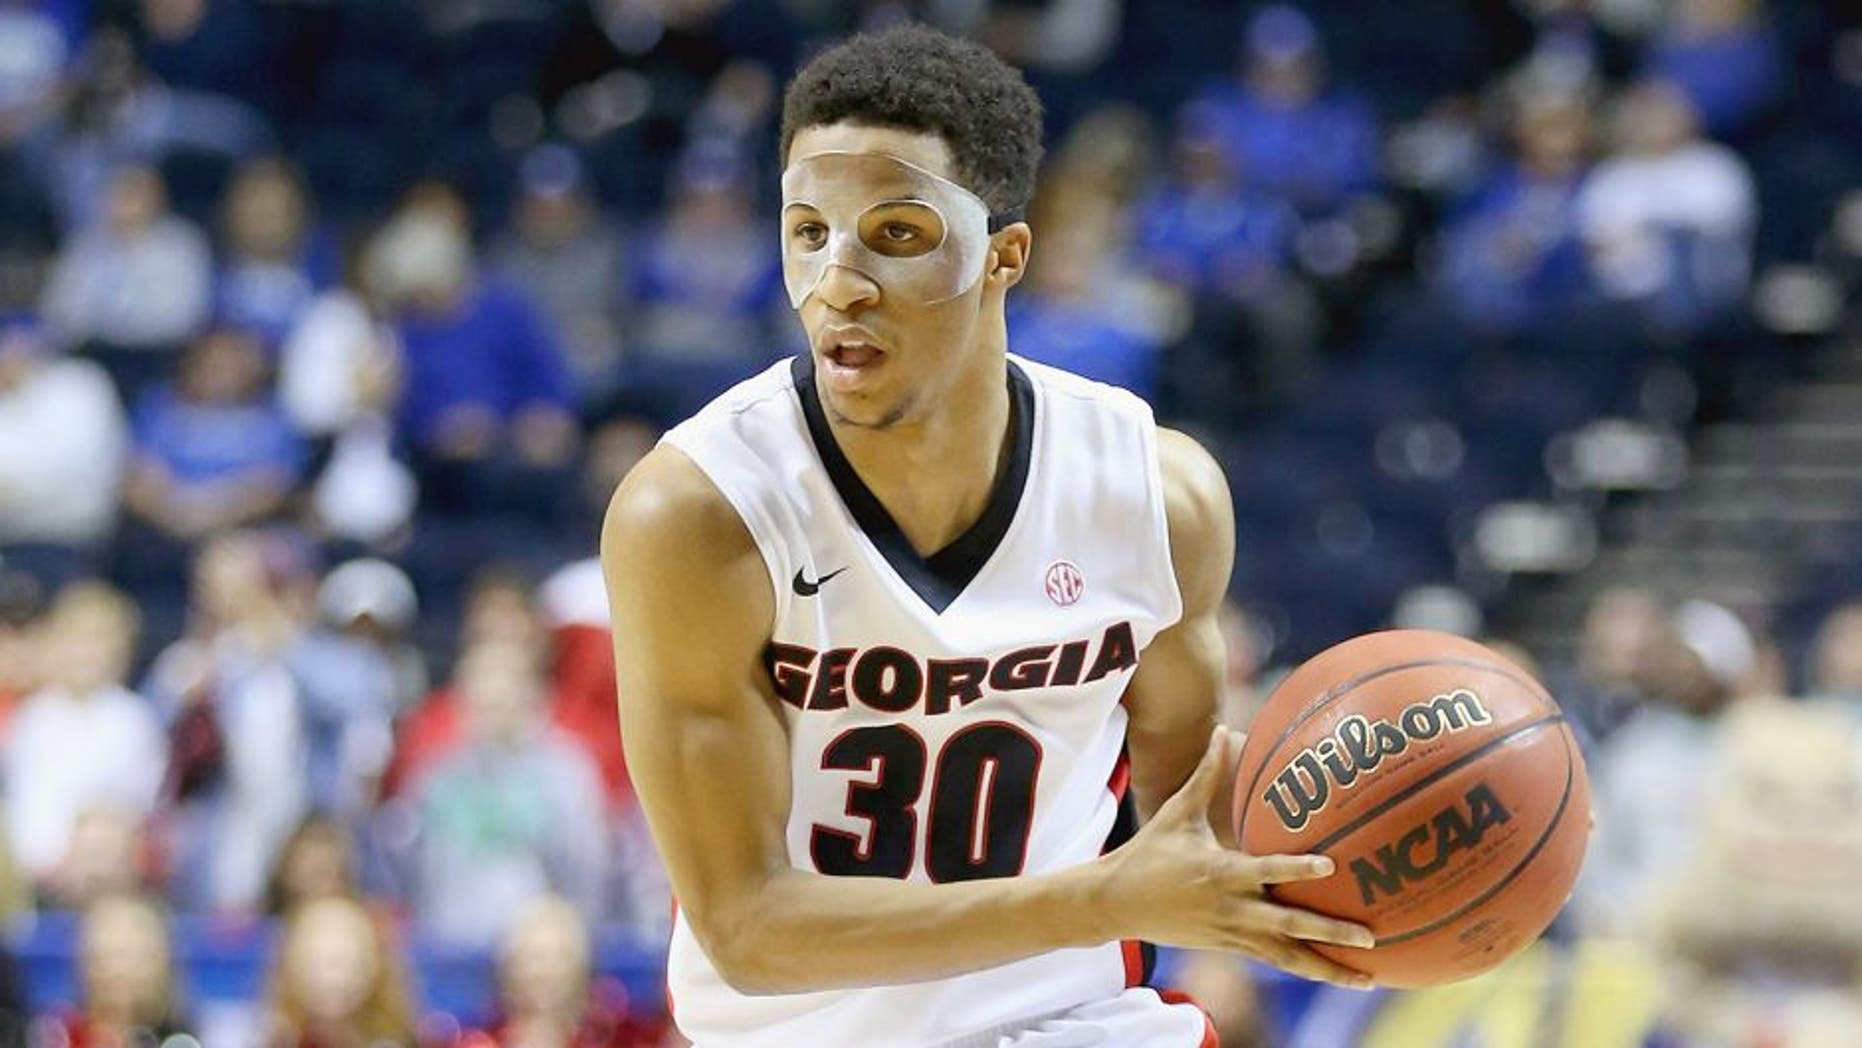 NASHVILLE, TN - MARCH 13: J.J. Frazier #30 of the Georgia Bulldogs passes the ball against the South Carolina Gamecocks during the quarterfinals of the SEC Basketball Tournament at Bridgestone Arena on March 13, 2015 in Nashville, Tennessee. (Photo by Andy Lyons/Getty Images)